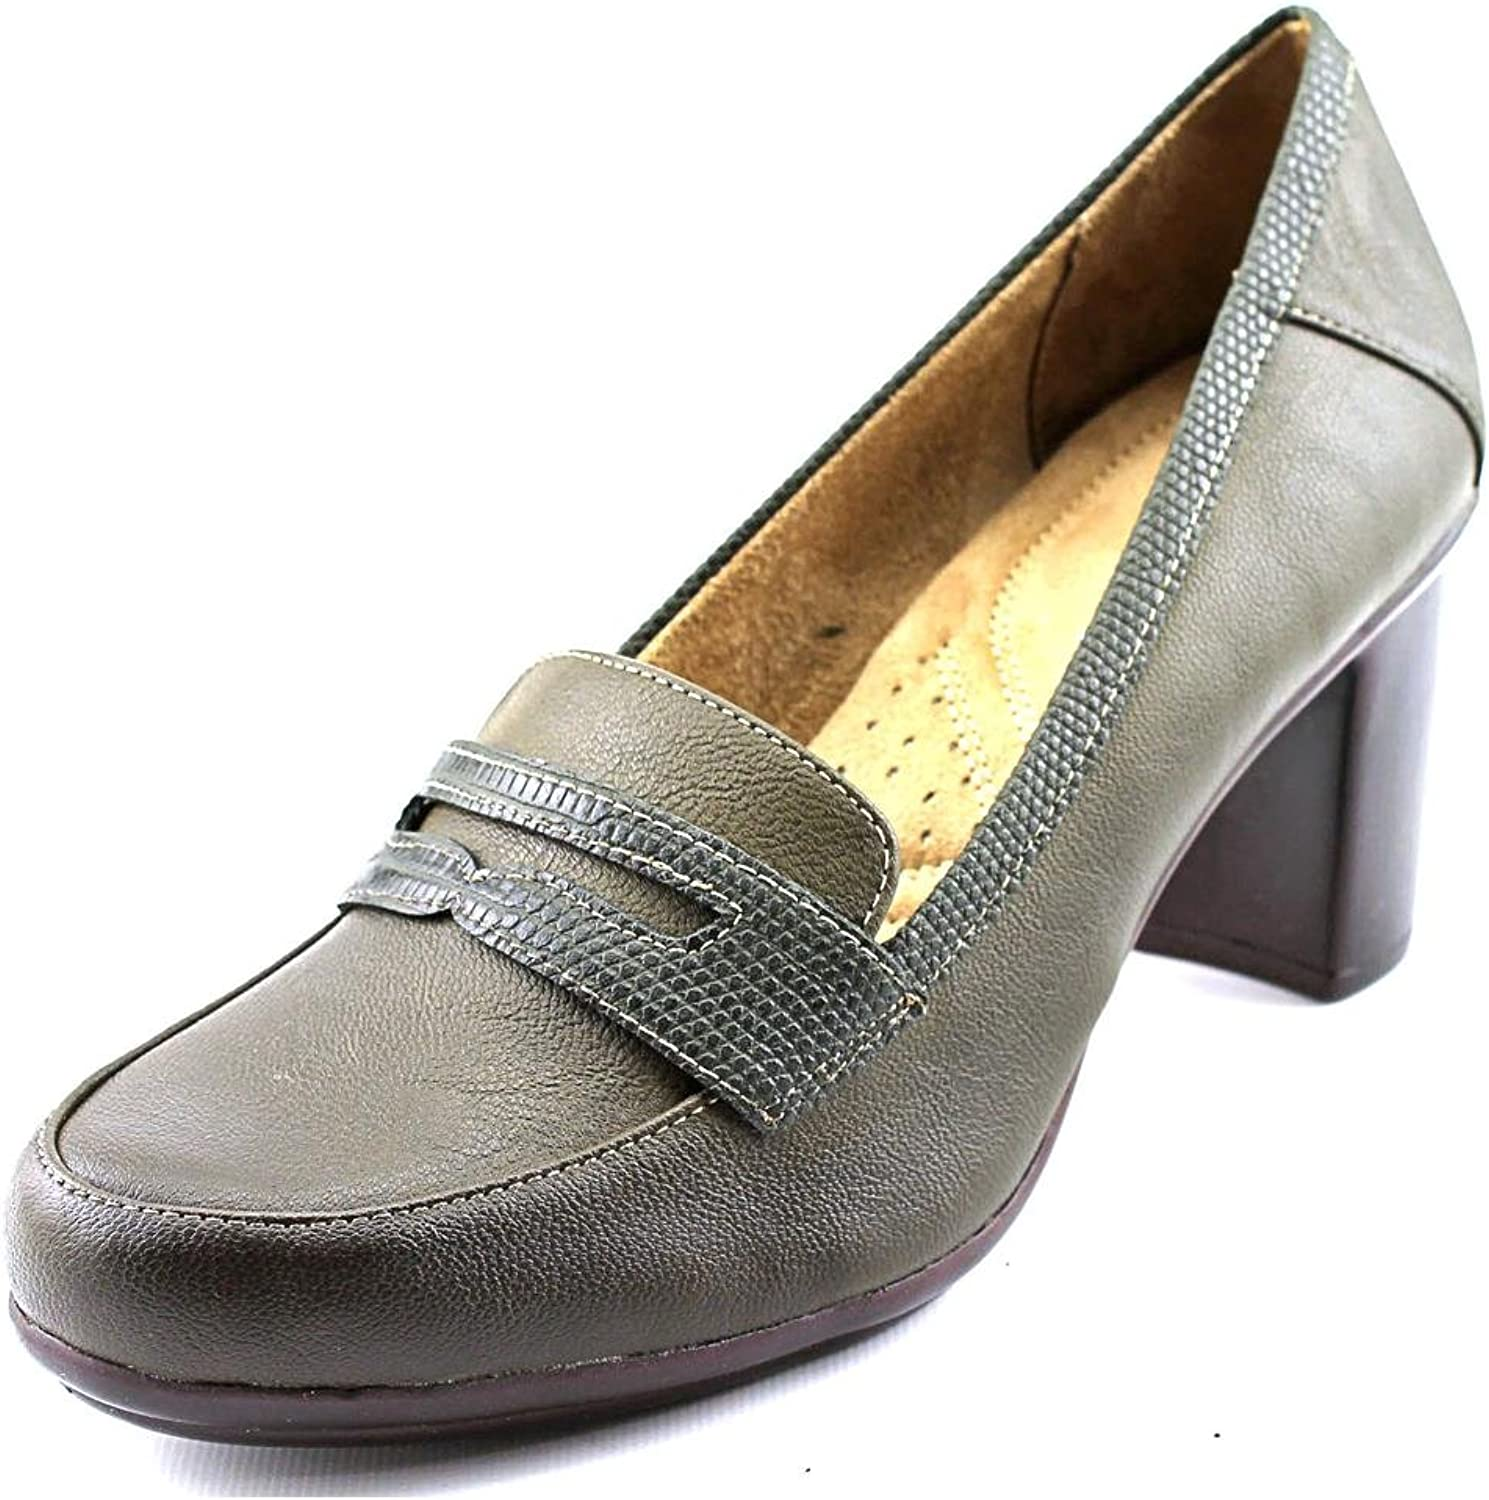 Naturalizer Womens Quirk Closed Toe Classic Pumps, Olive, Size 8.5